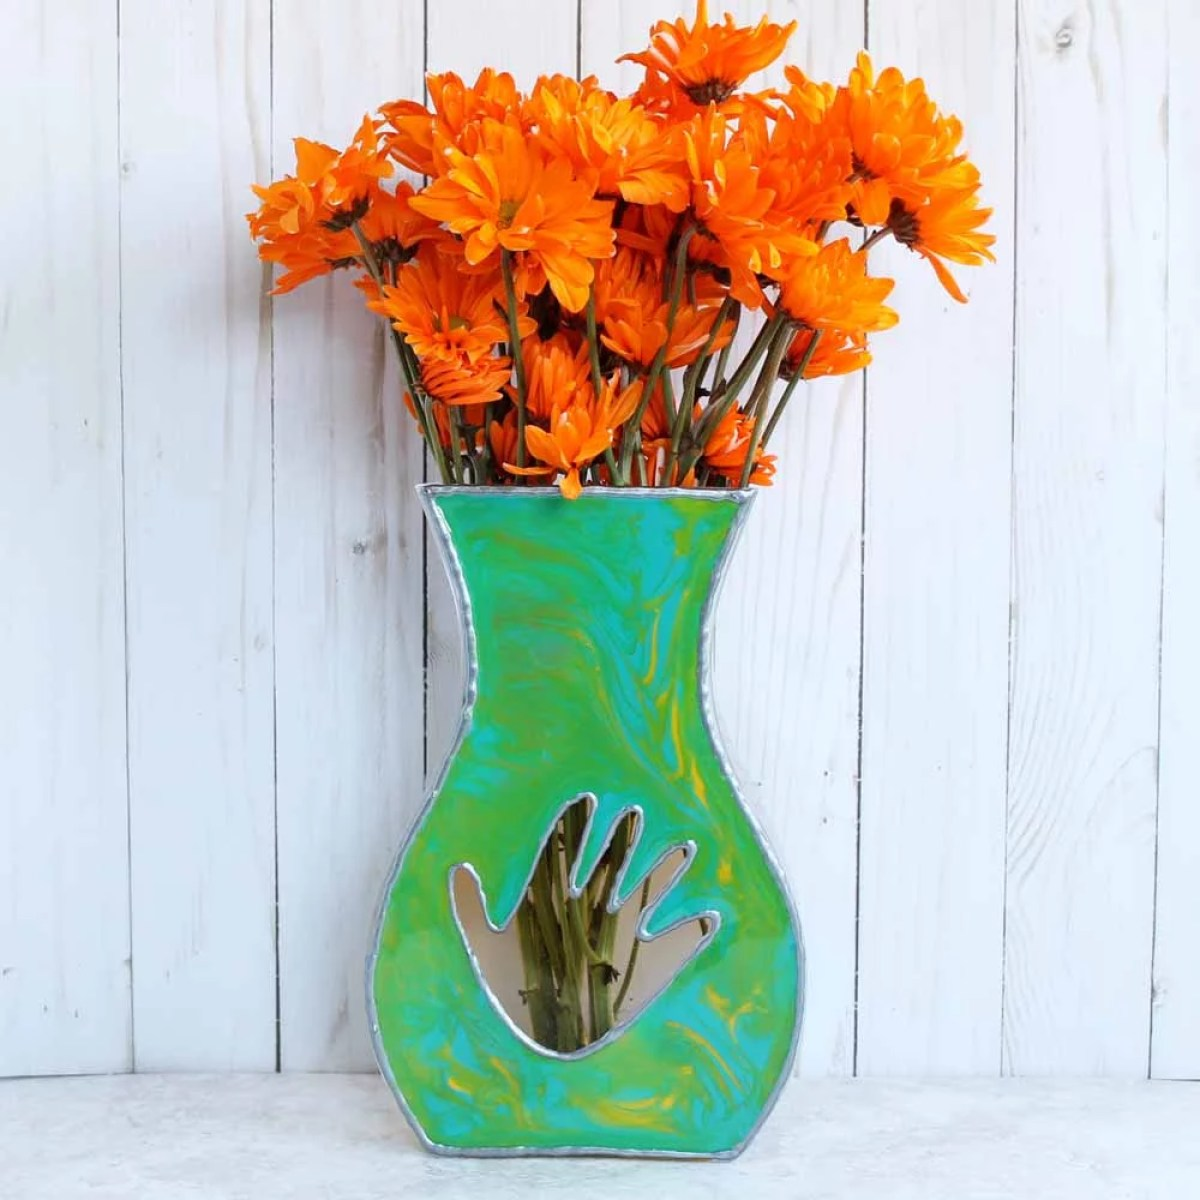 resin painted flat sided vase with child's handprint and flowers